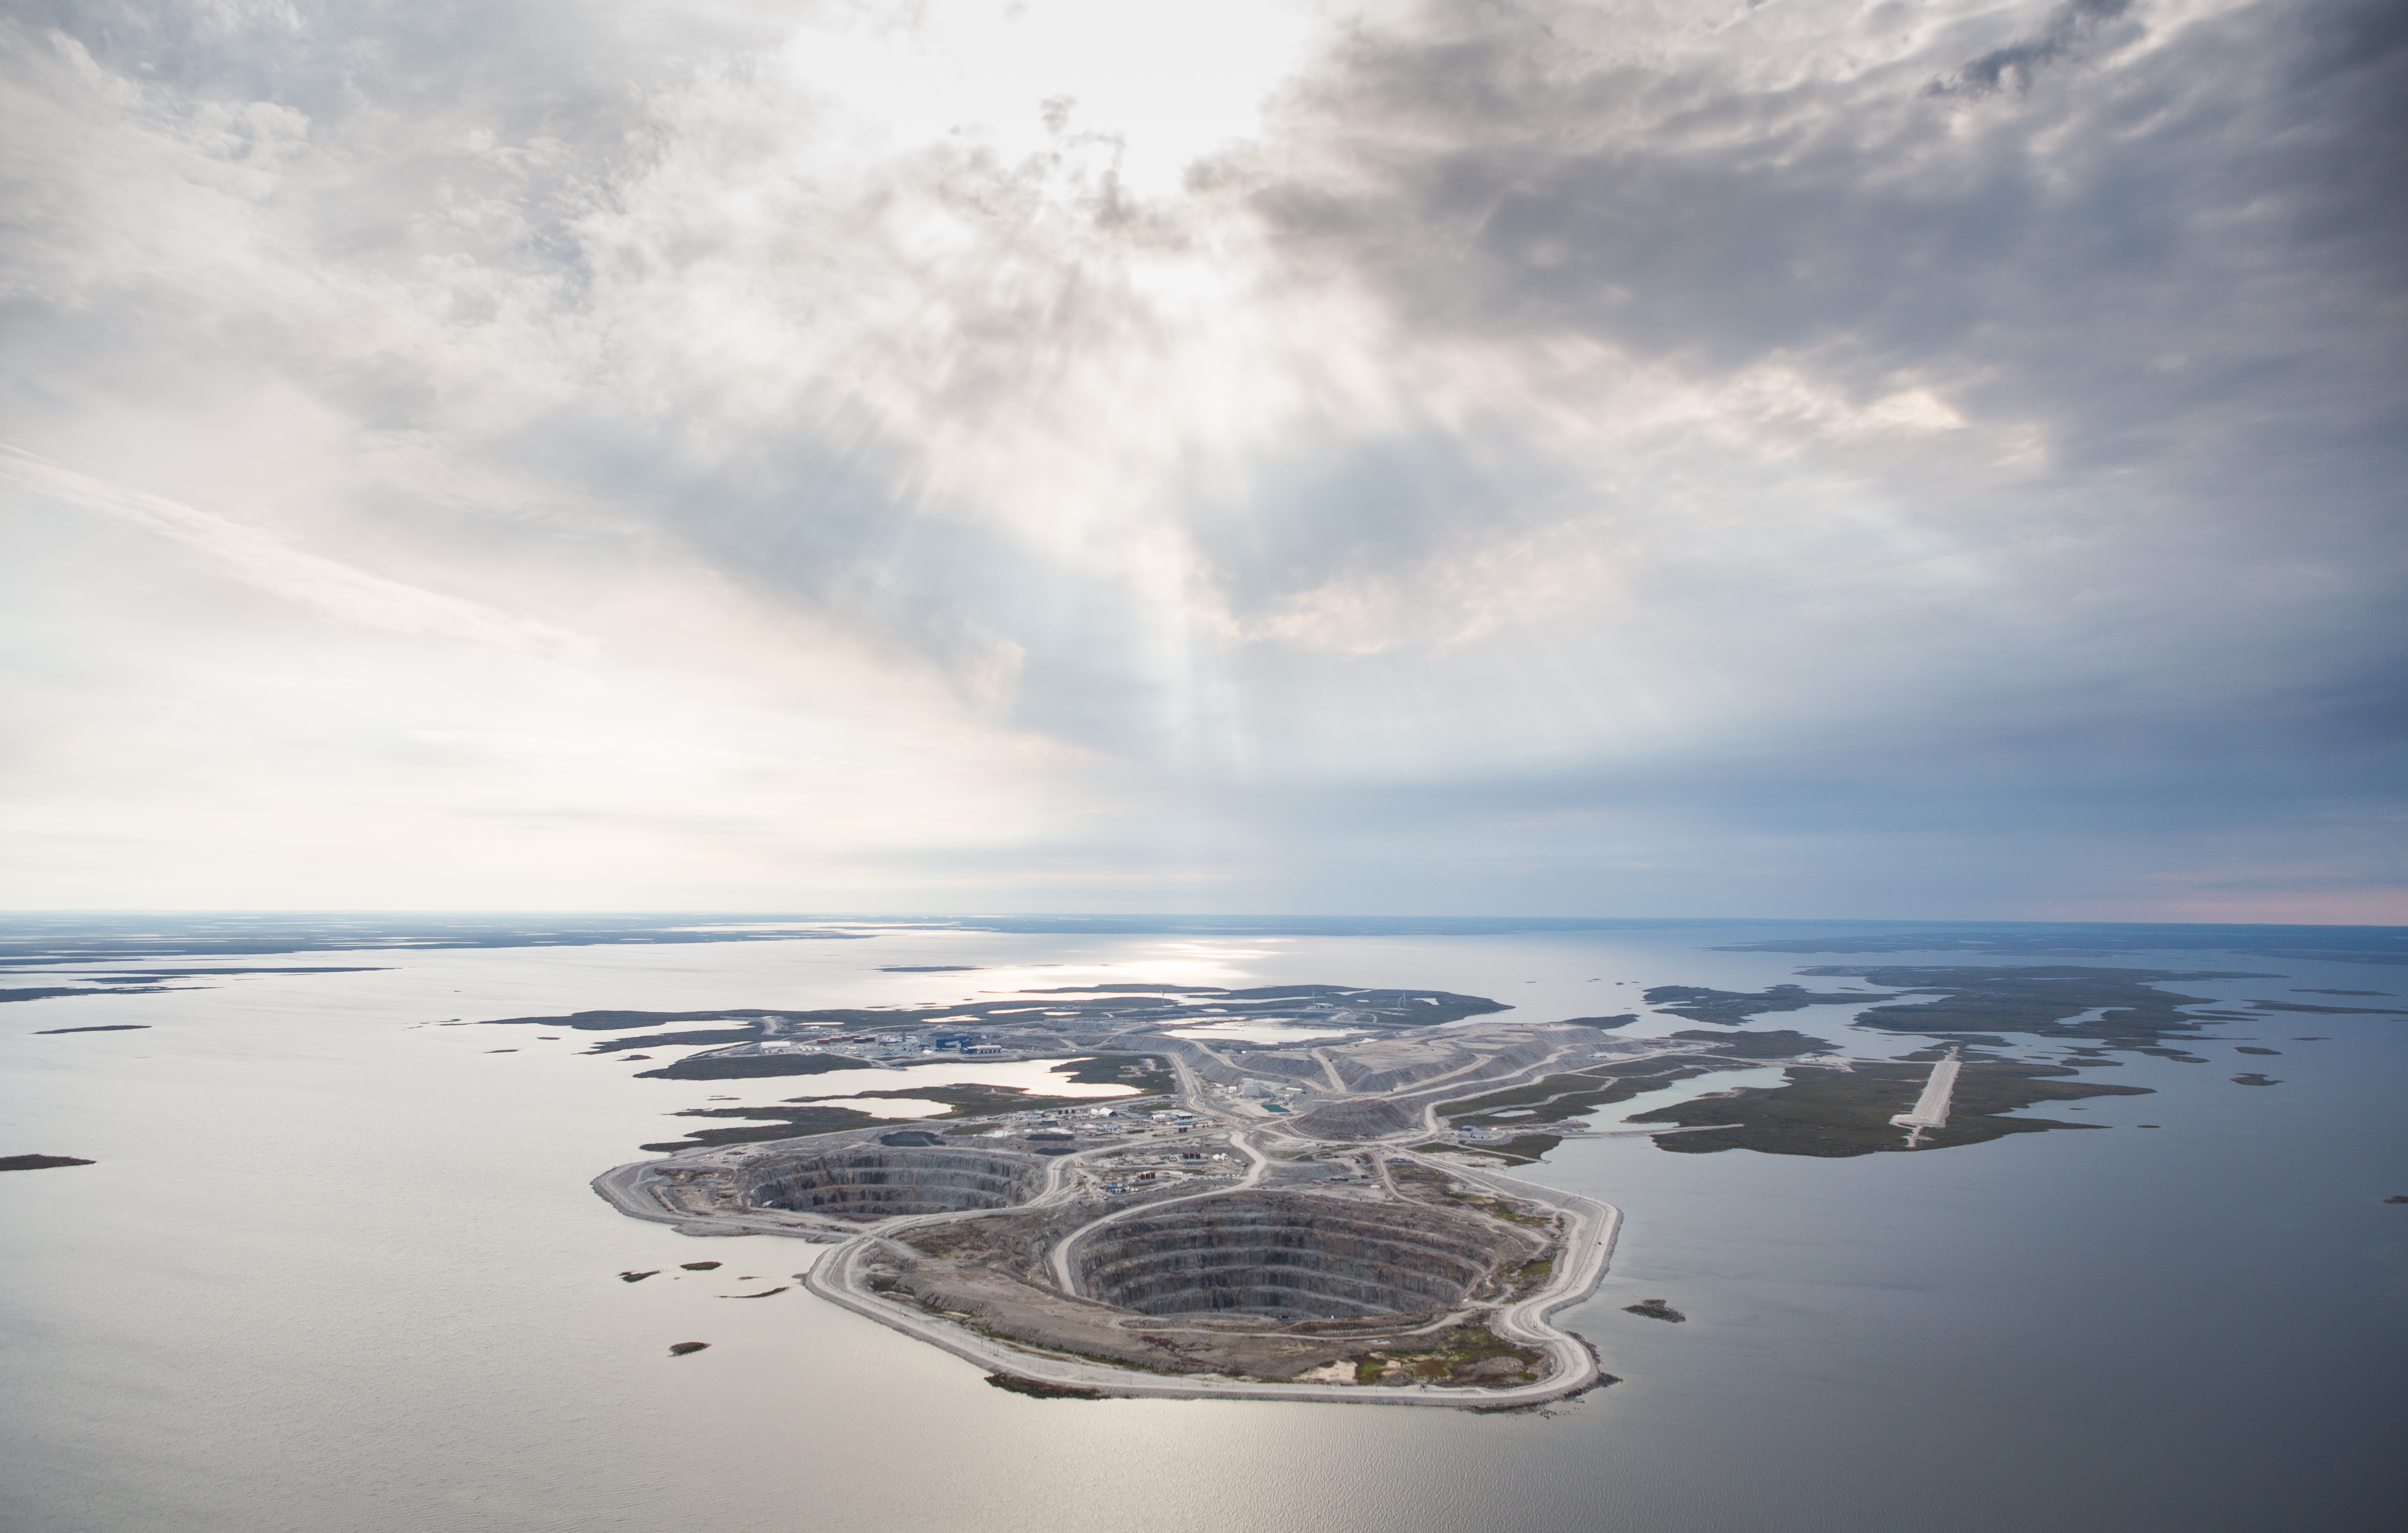 Aerial view of the Diavik diamond mine in the remote North West region of Canada.